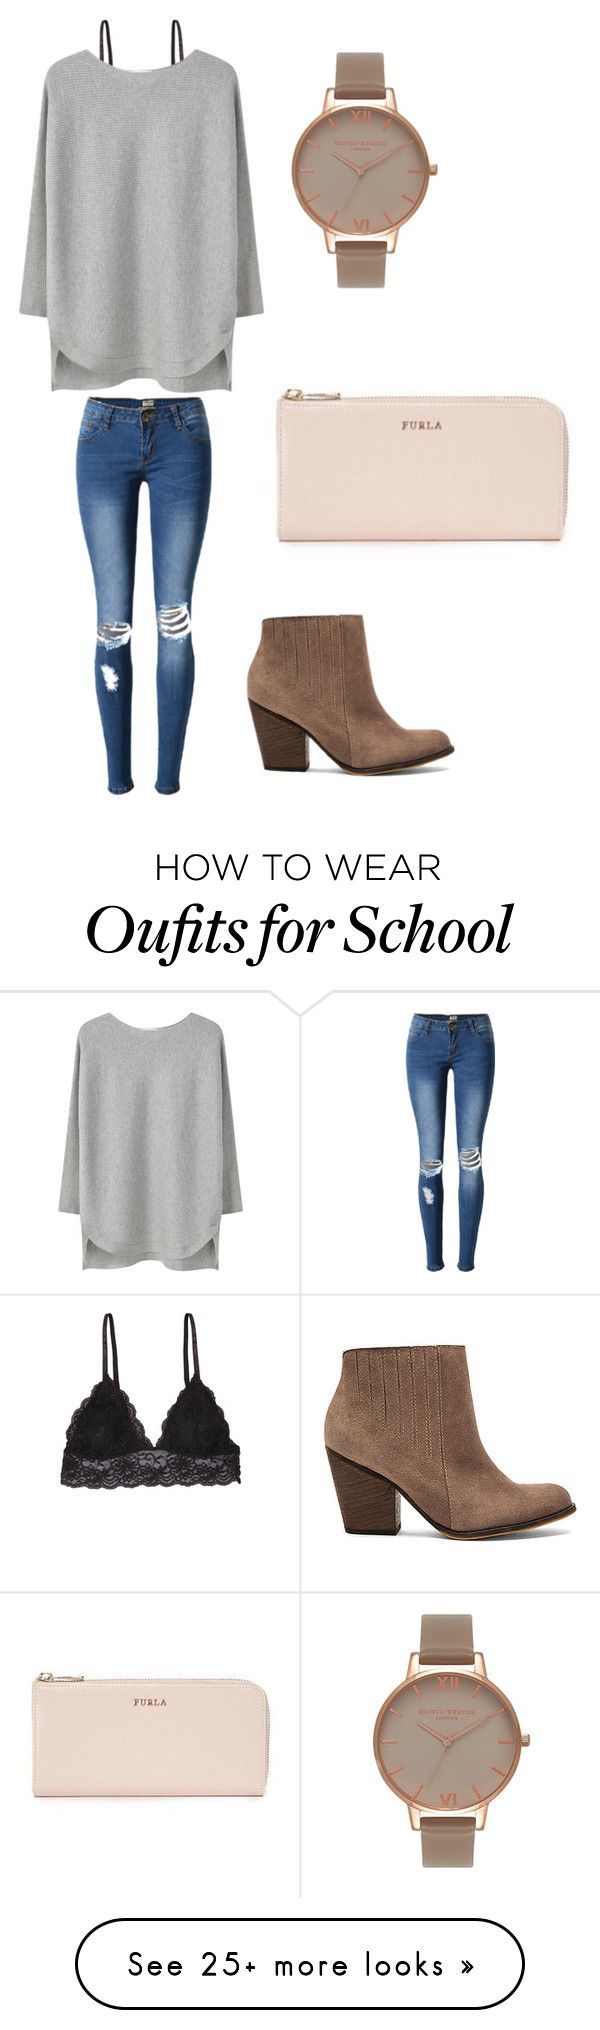 """got school free so i go shopping"" by sarahfohlen on Polyvore featuring Humble Chic, MANGO, Olivia Burton, Kaanas, Furla, Fall and 2k16"